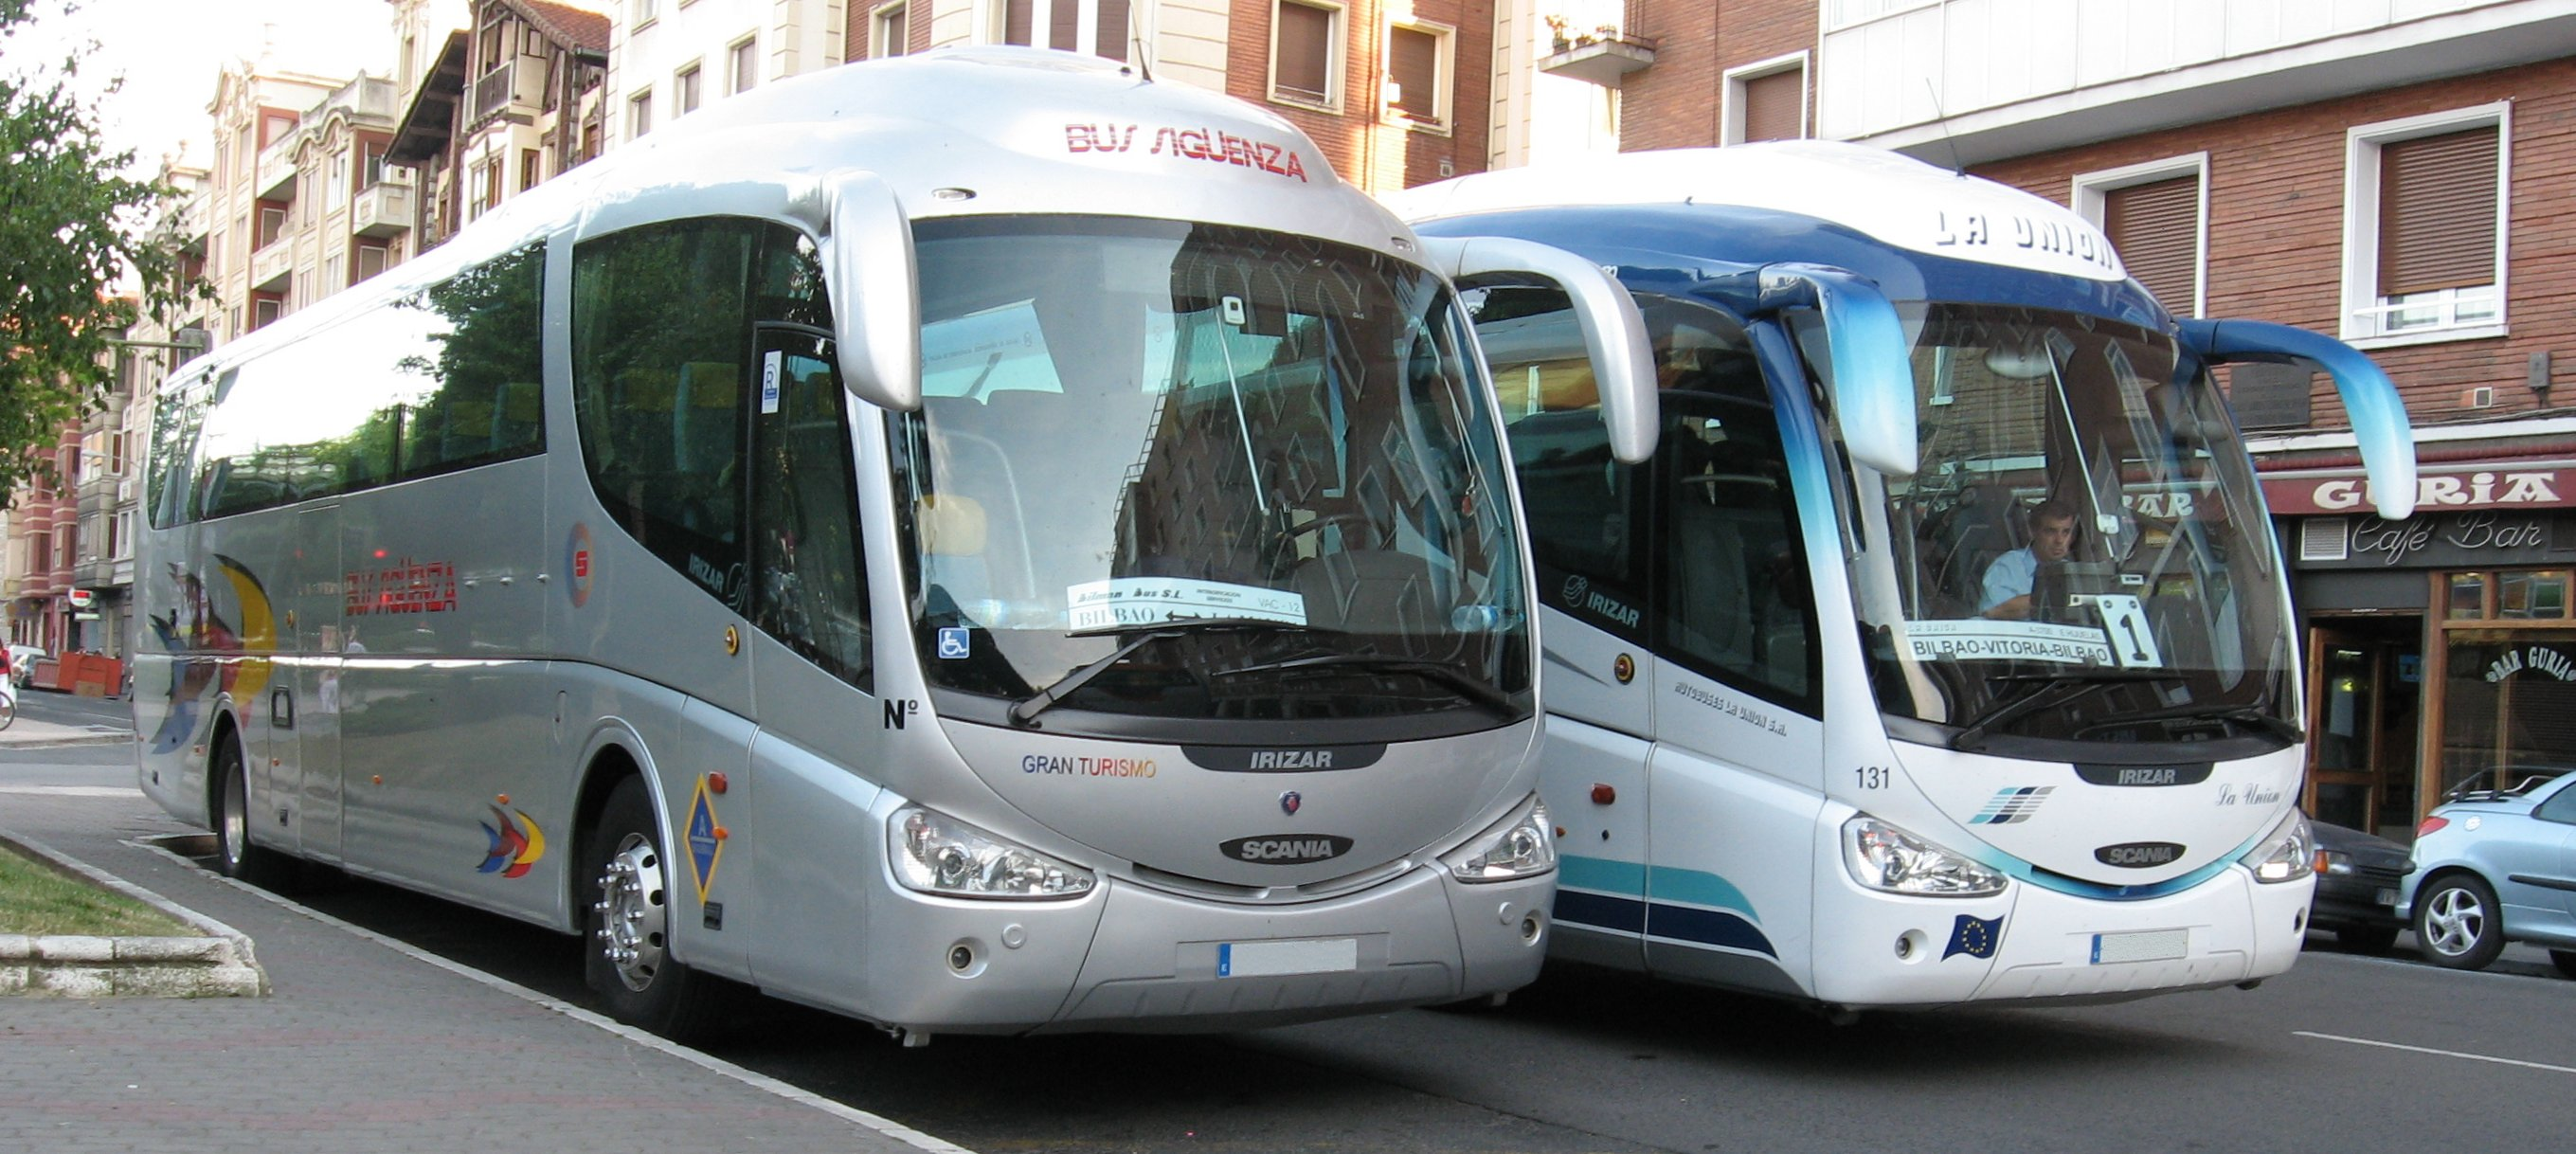 File Irizar Pb Jpg Wikimedia Commons